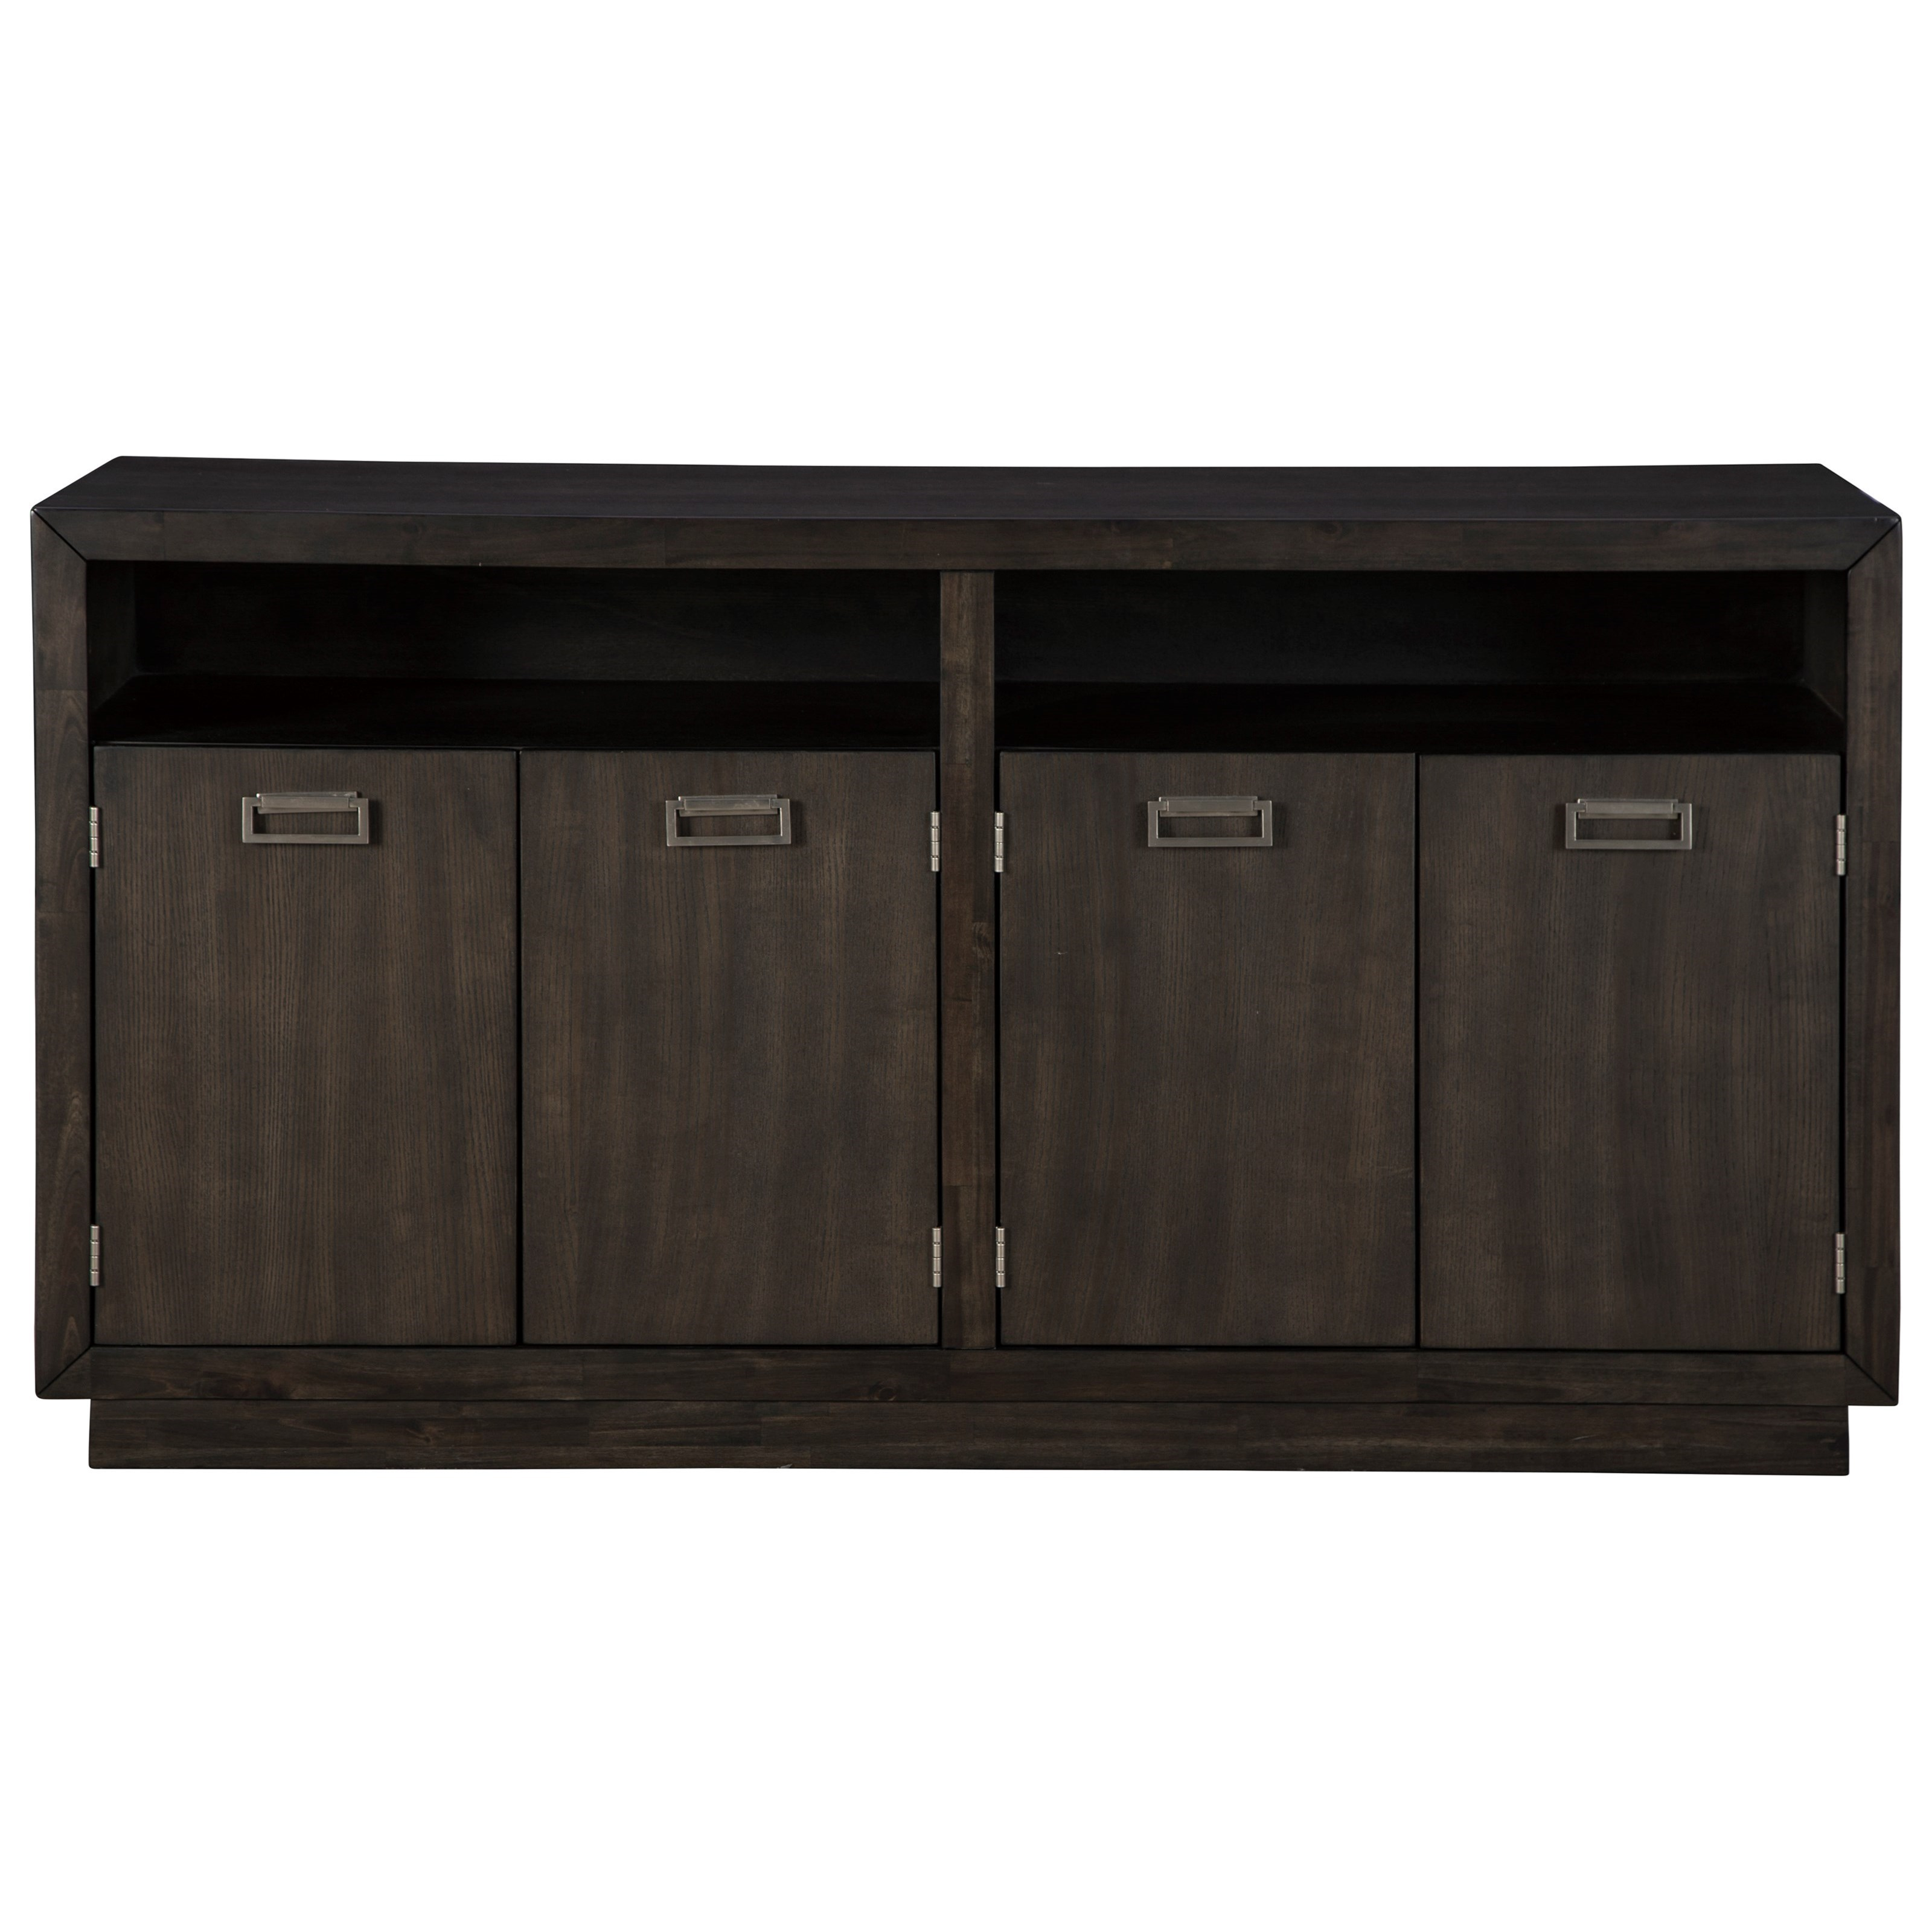 Hyndell Dining Room Server by Signature Design by Ashley at Darvin Furniture